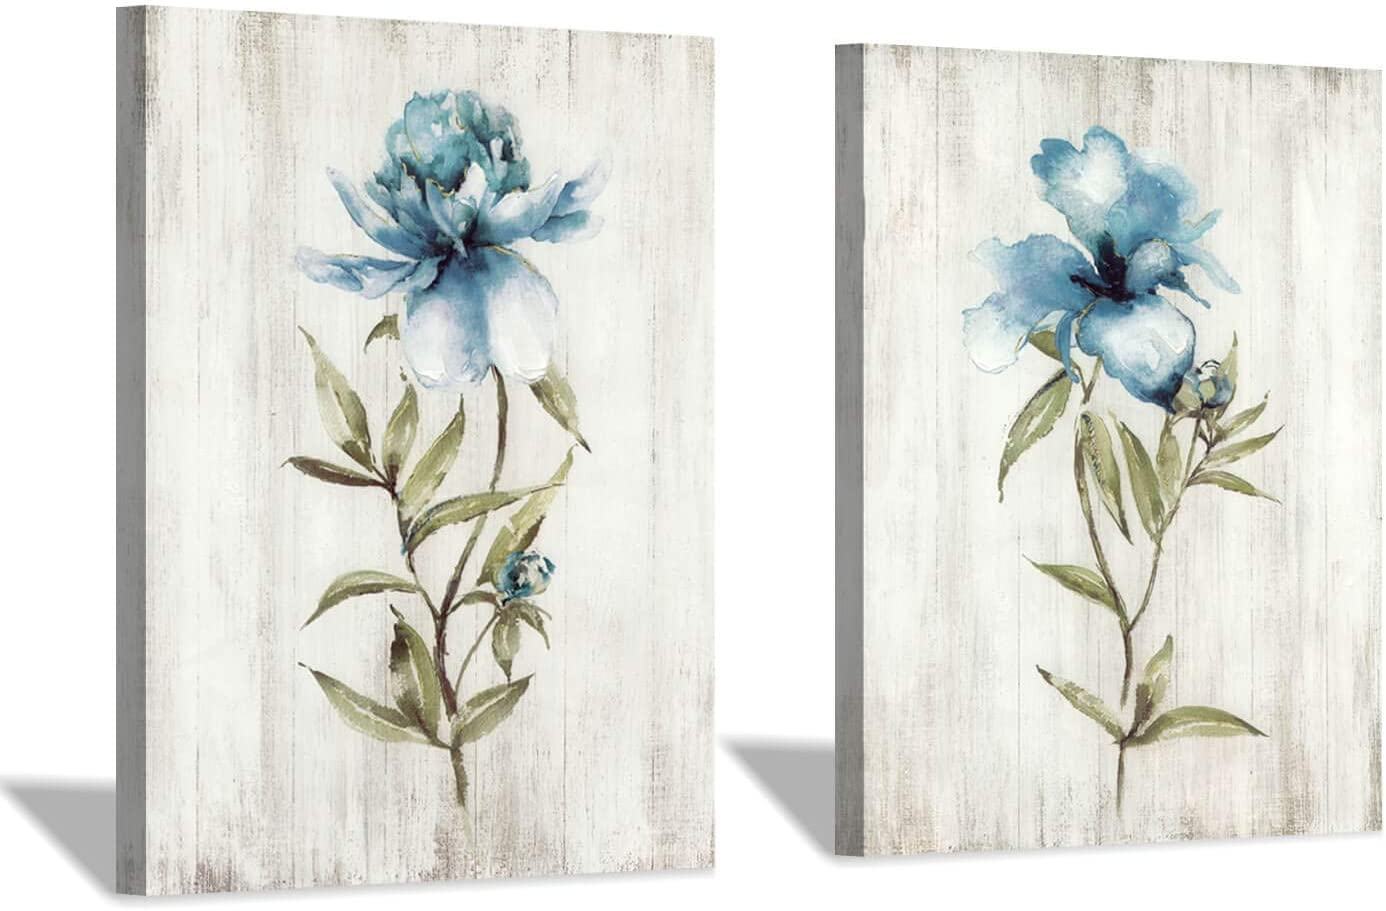 Blue Flower Canvas Wall Art: Botanical Floral Artwork Wildflower Picture Painting for Bedroom (24'' x 18'' x 2 Panels)